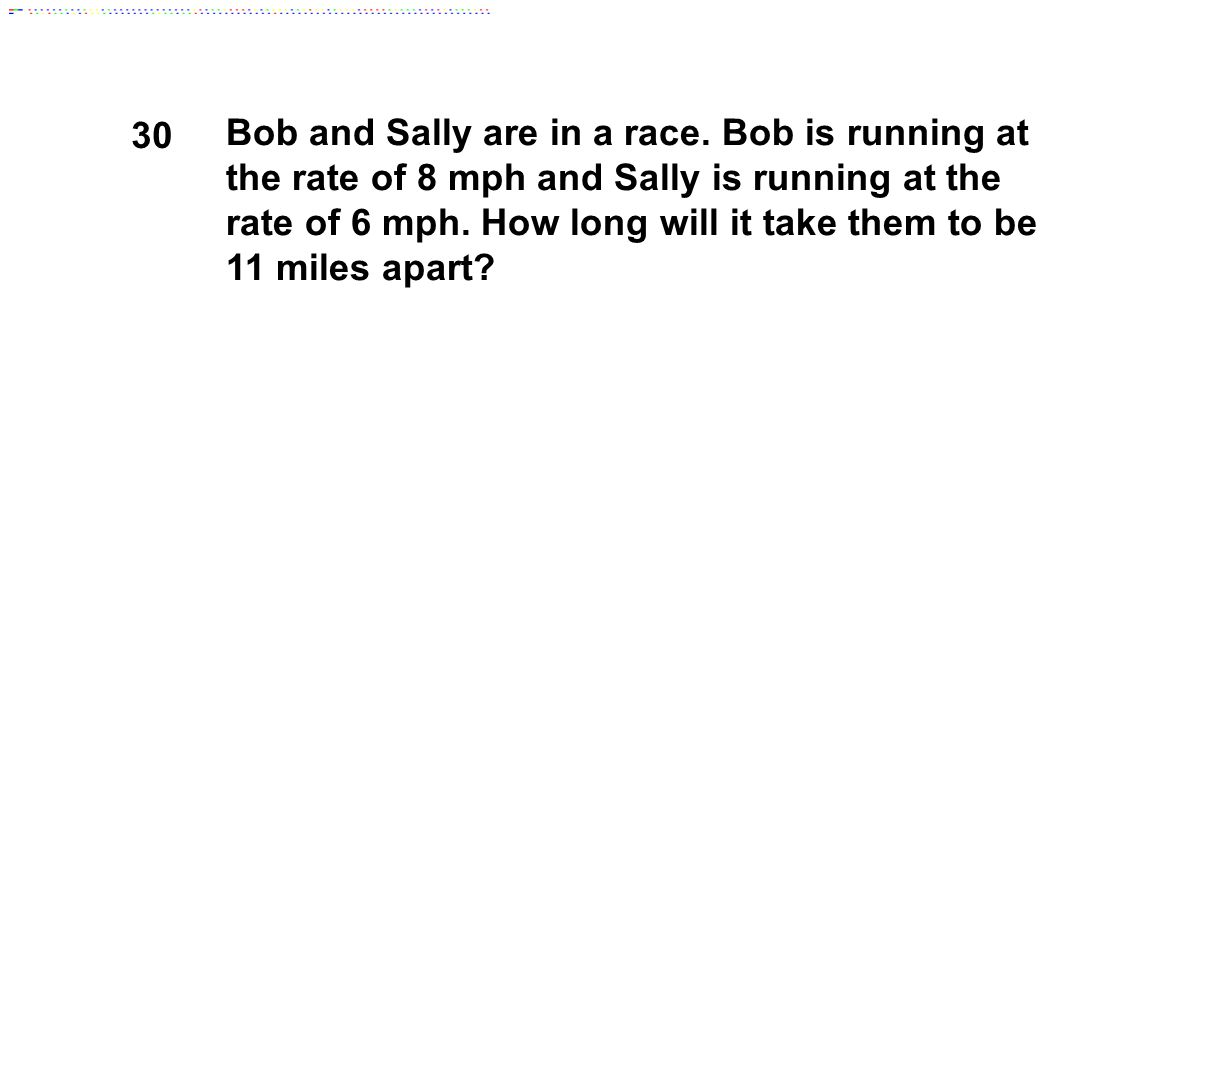 30 Bob and Sally are in a race. Bob is running at the rate of 8 mph and Sally is running at the rate of 6 mph. How long will it take them to be 11 mil